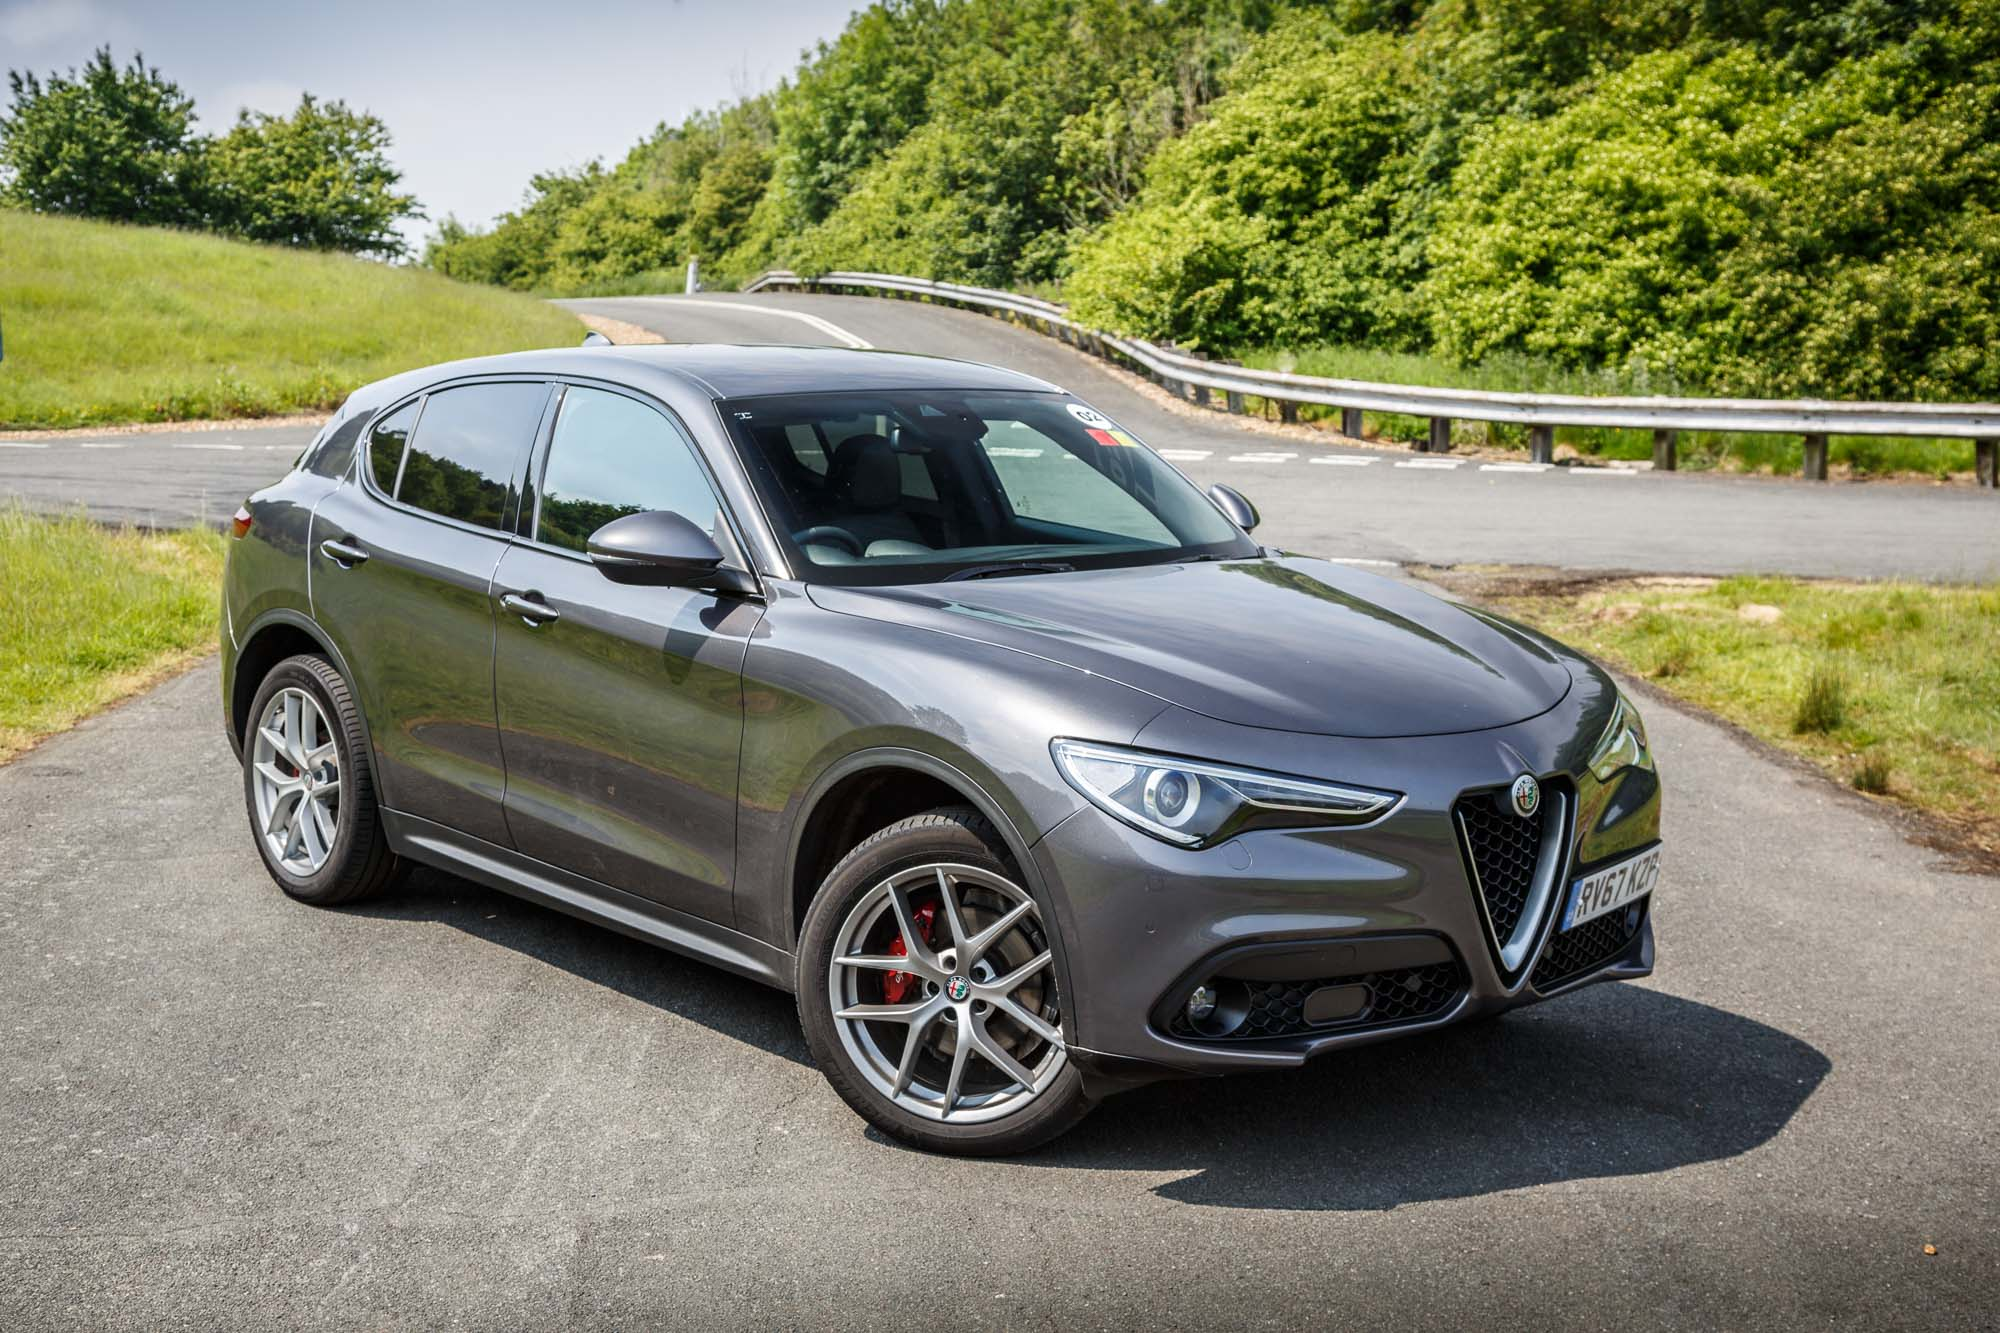 2018 alfa romeo stelvio suv milano edizione an suv with ambition. Black Bedroom Furniture Sets. Home Design Ideas